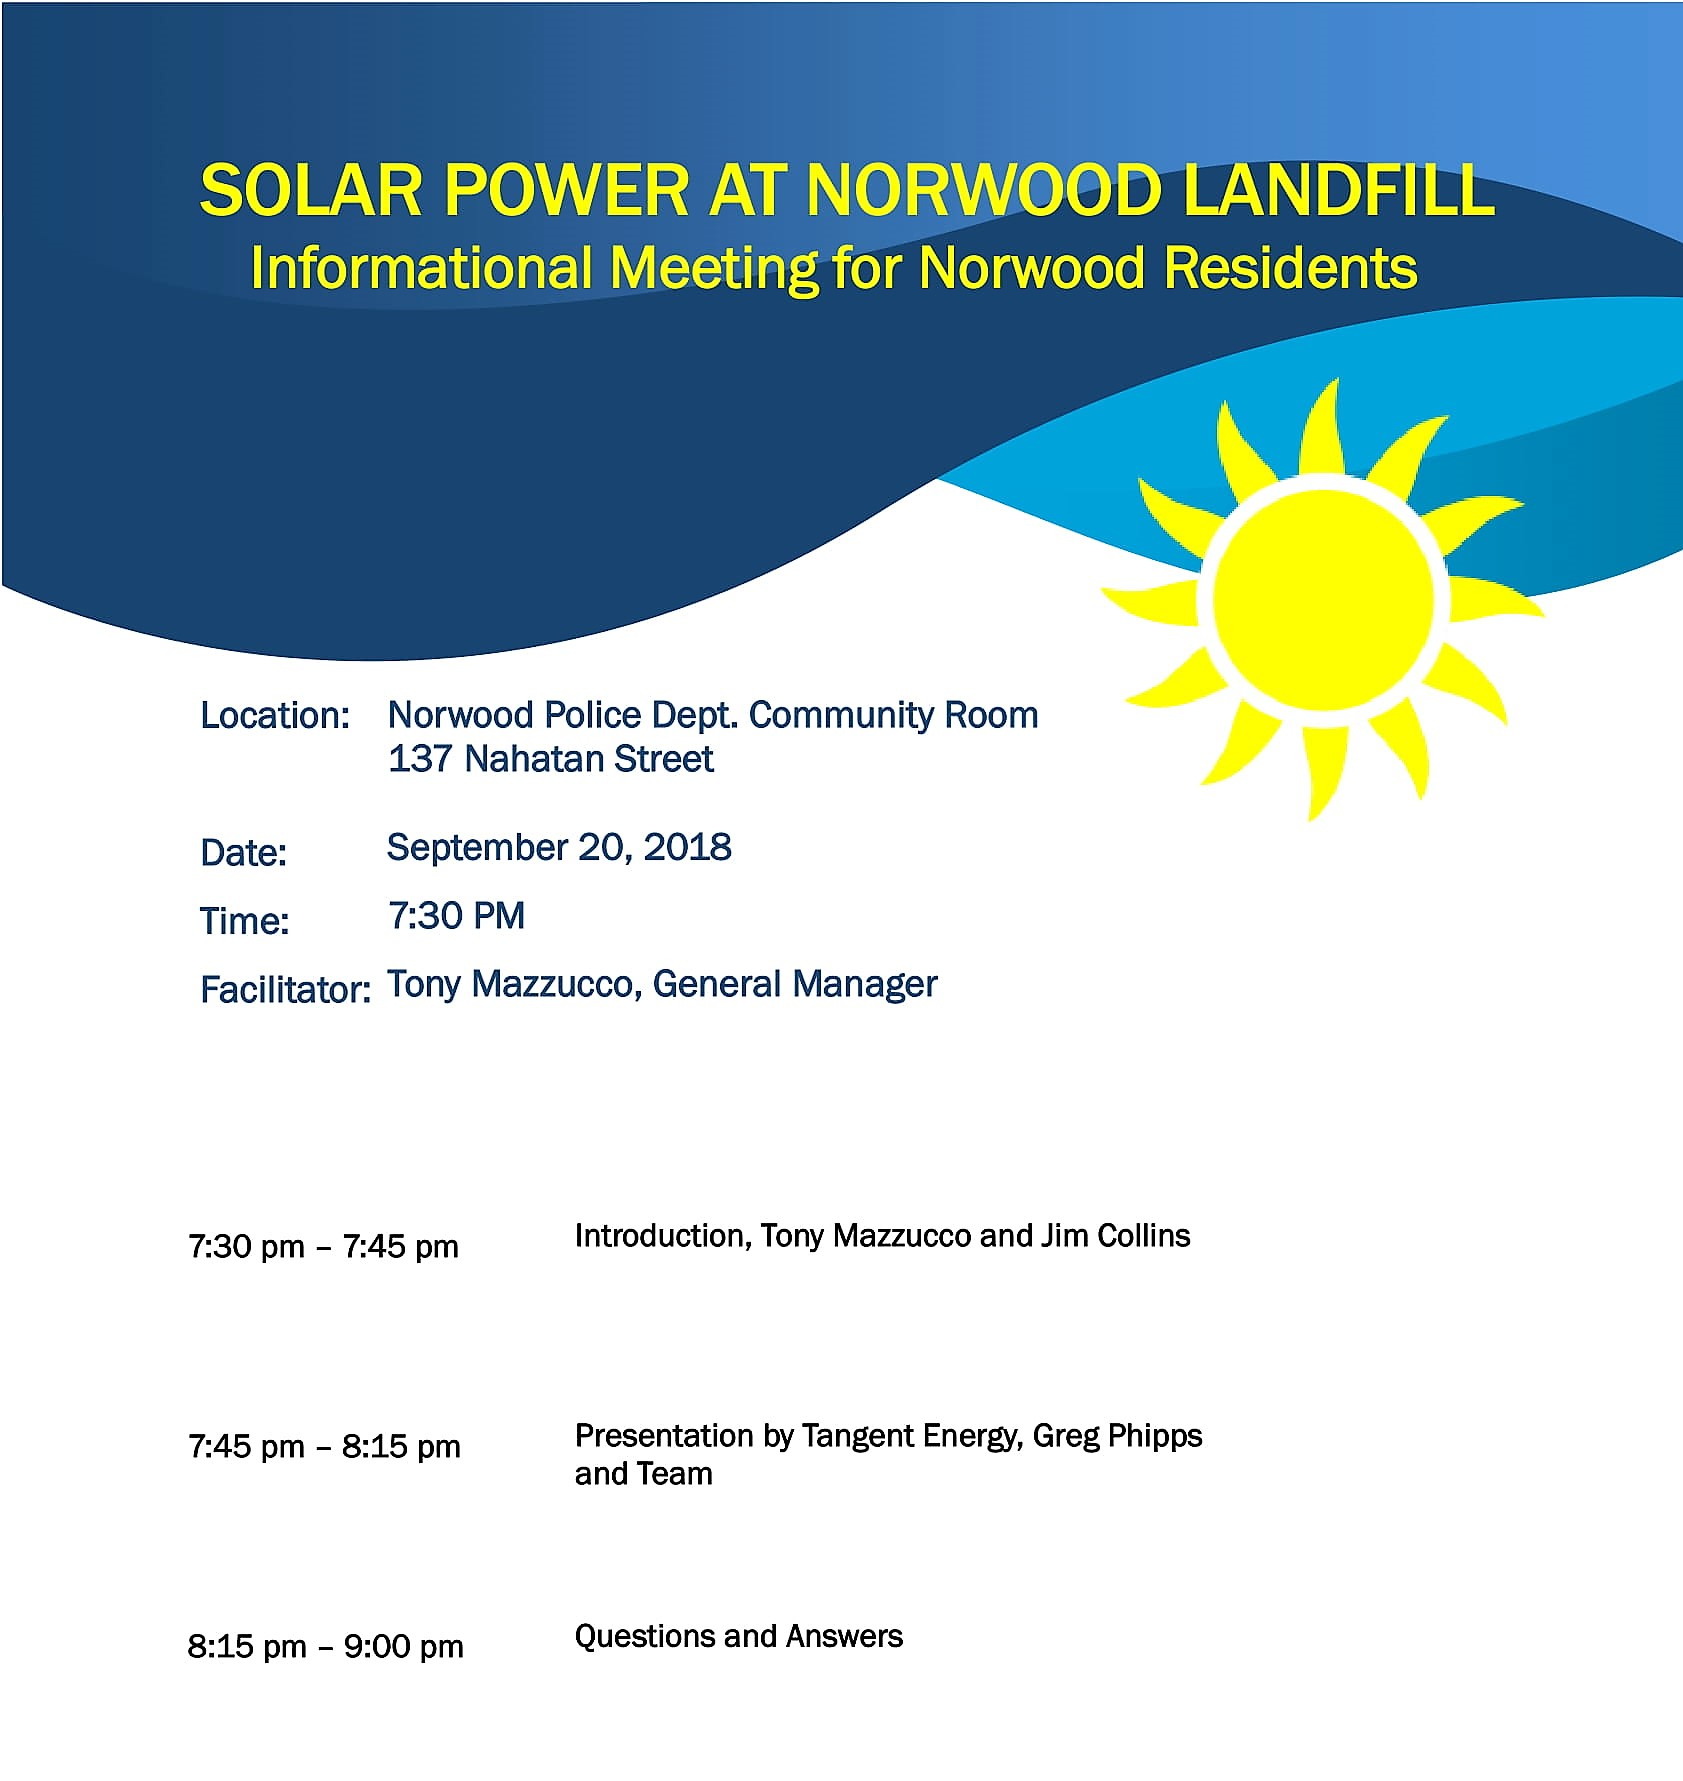 Solar Power at Norwood landfill Informational Meeting